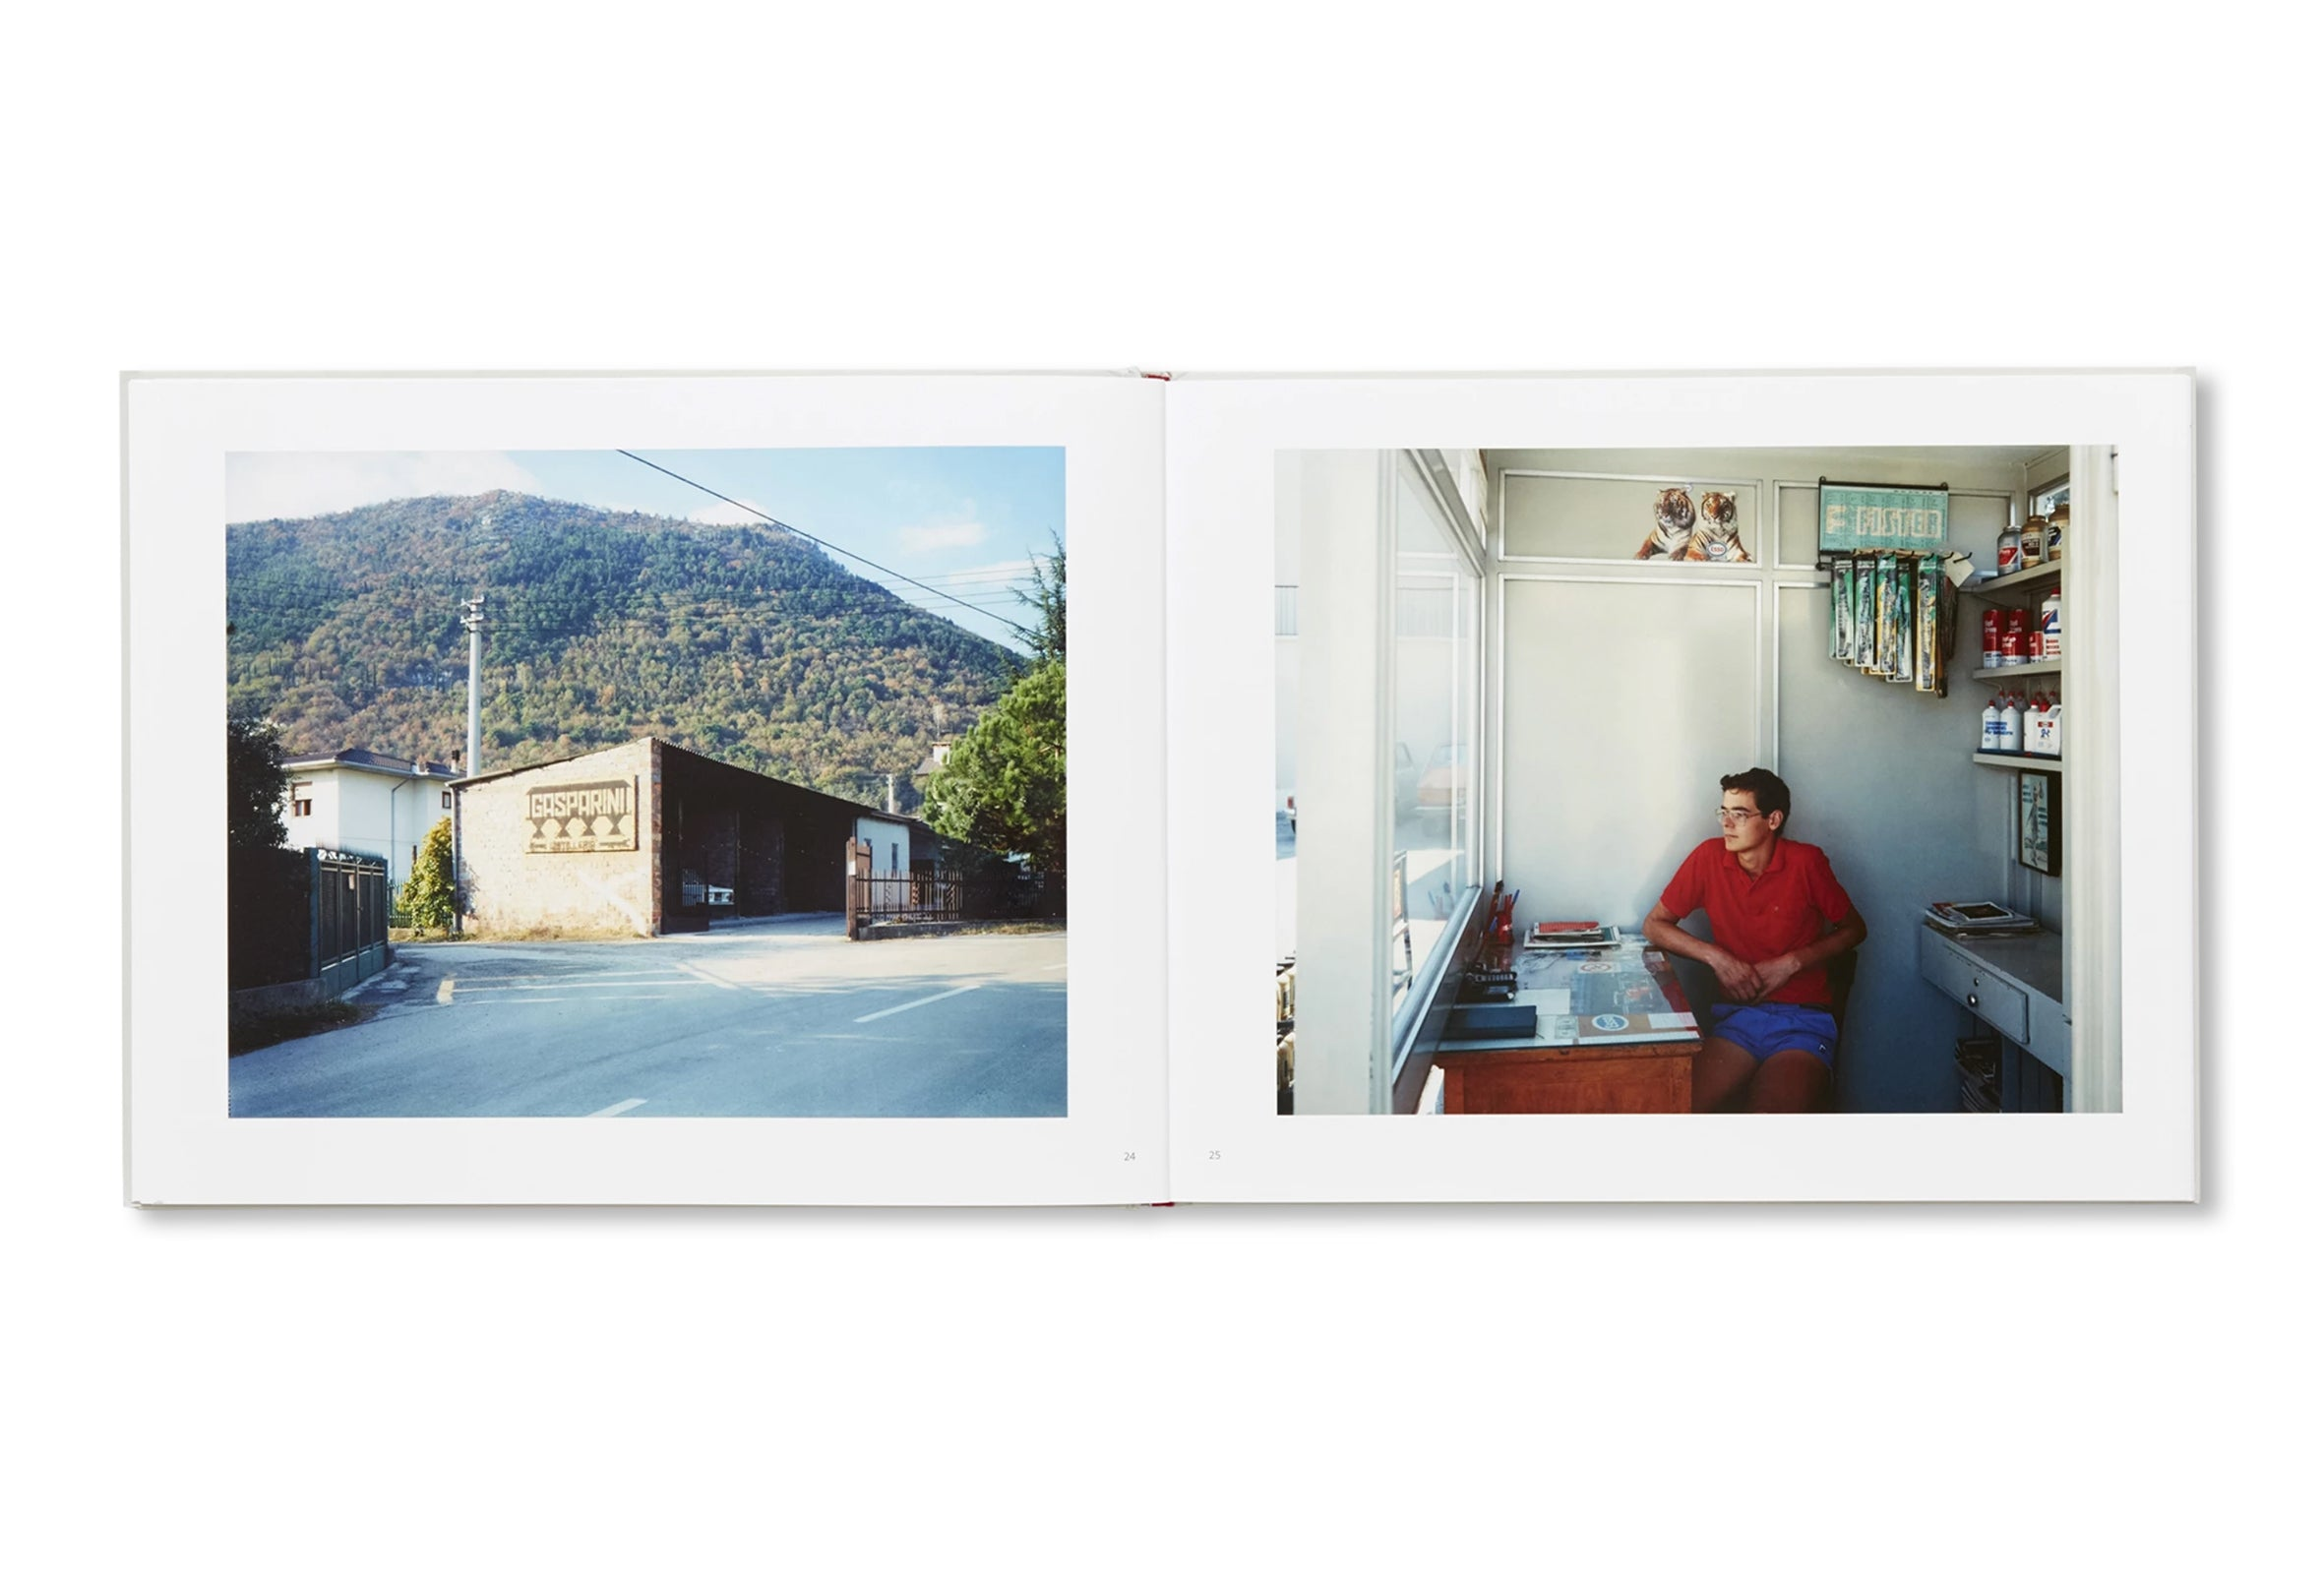 IN VENETO, 1984-89 by Guido Guidi